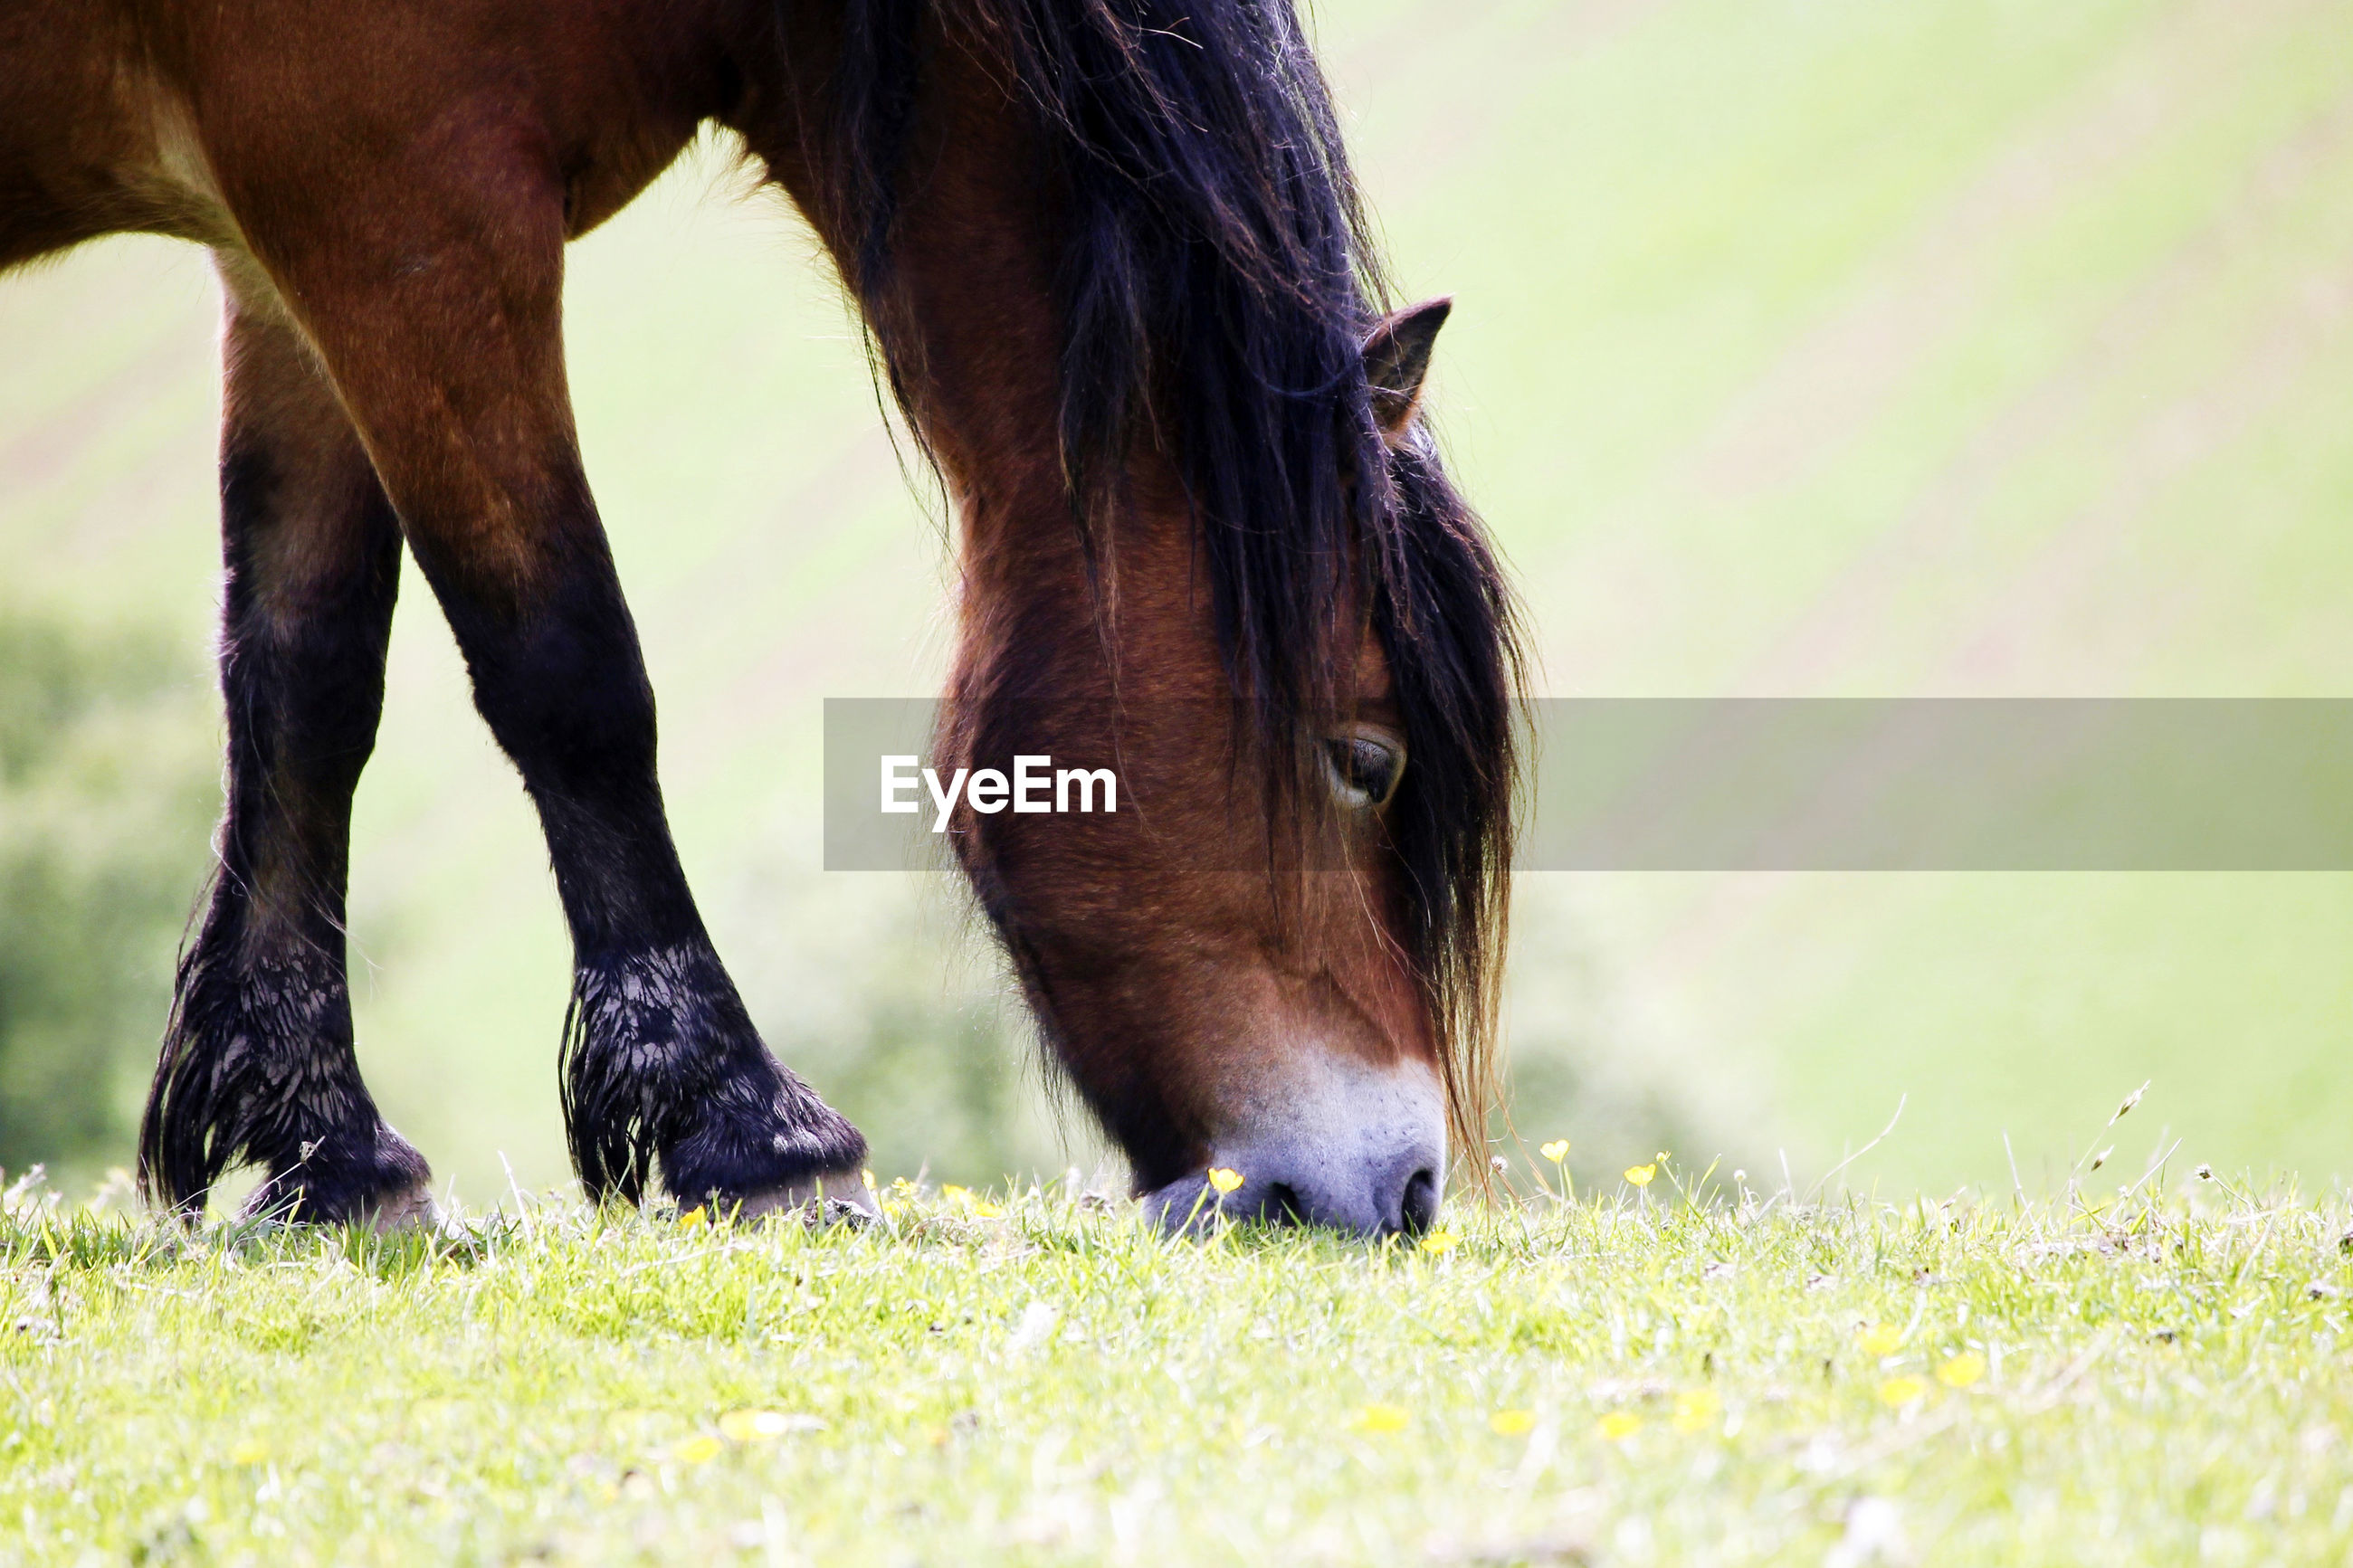 VIEW OF A HORSE IN FIELD